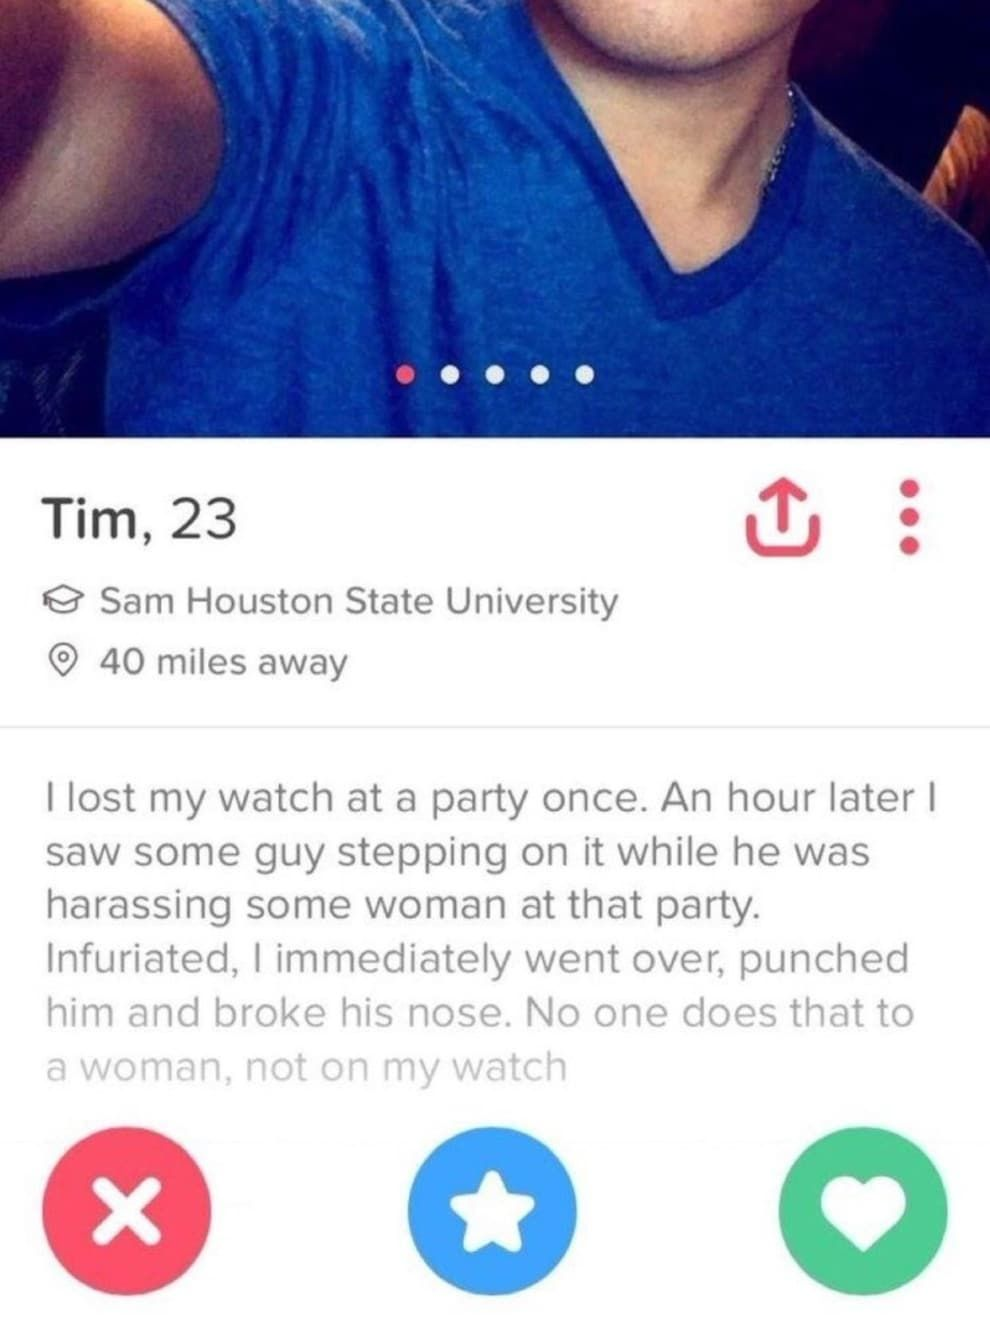 21 Tinder Profiles That You D Swipe Right On Just Because Of The Quality Bio Tinder Profile Funny Bio Tinder Humor